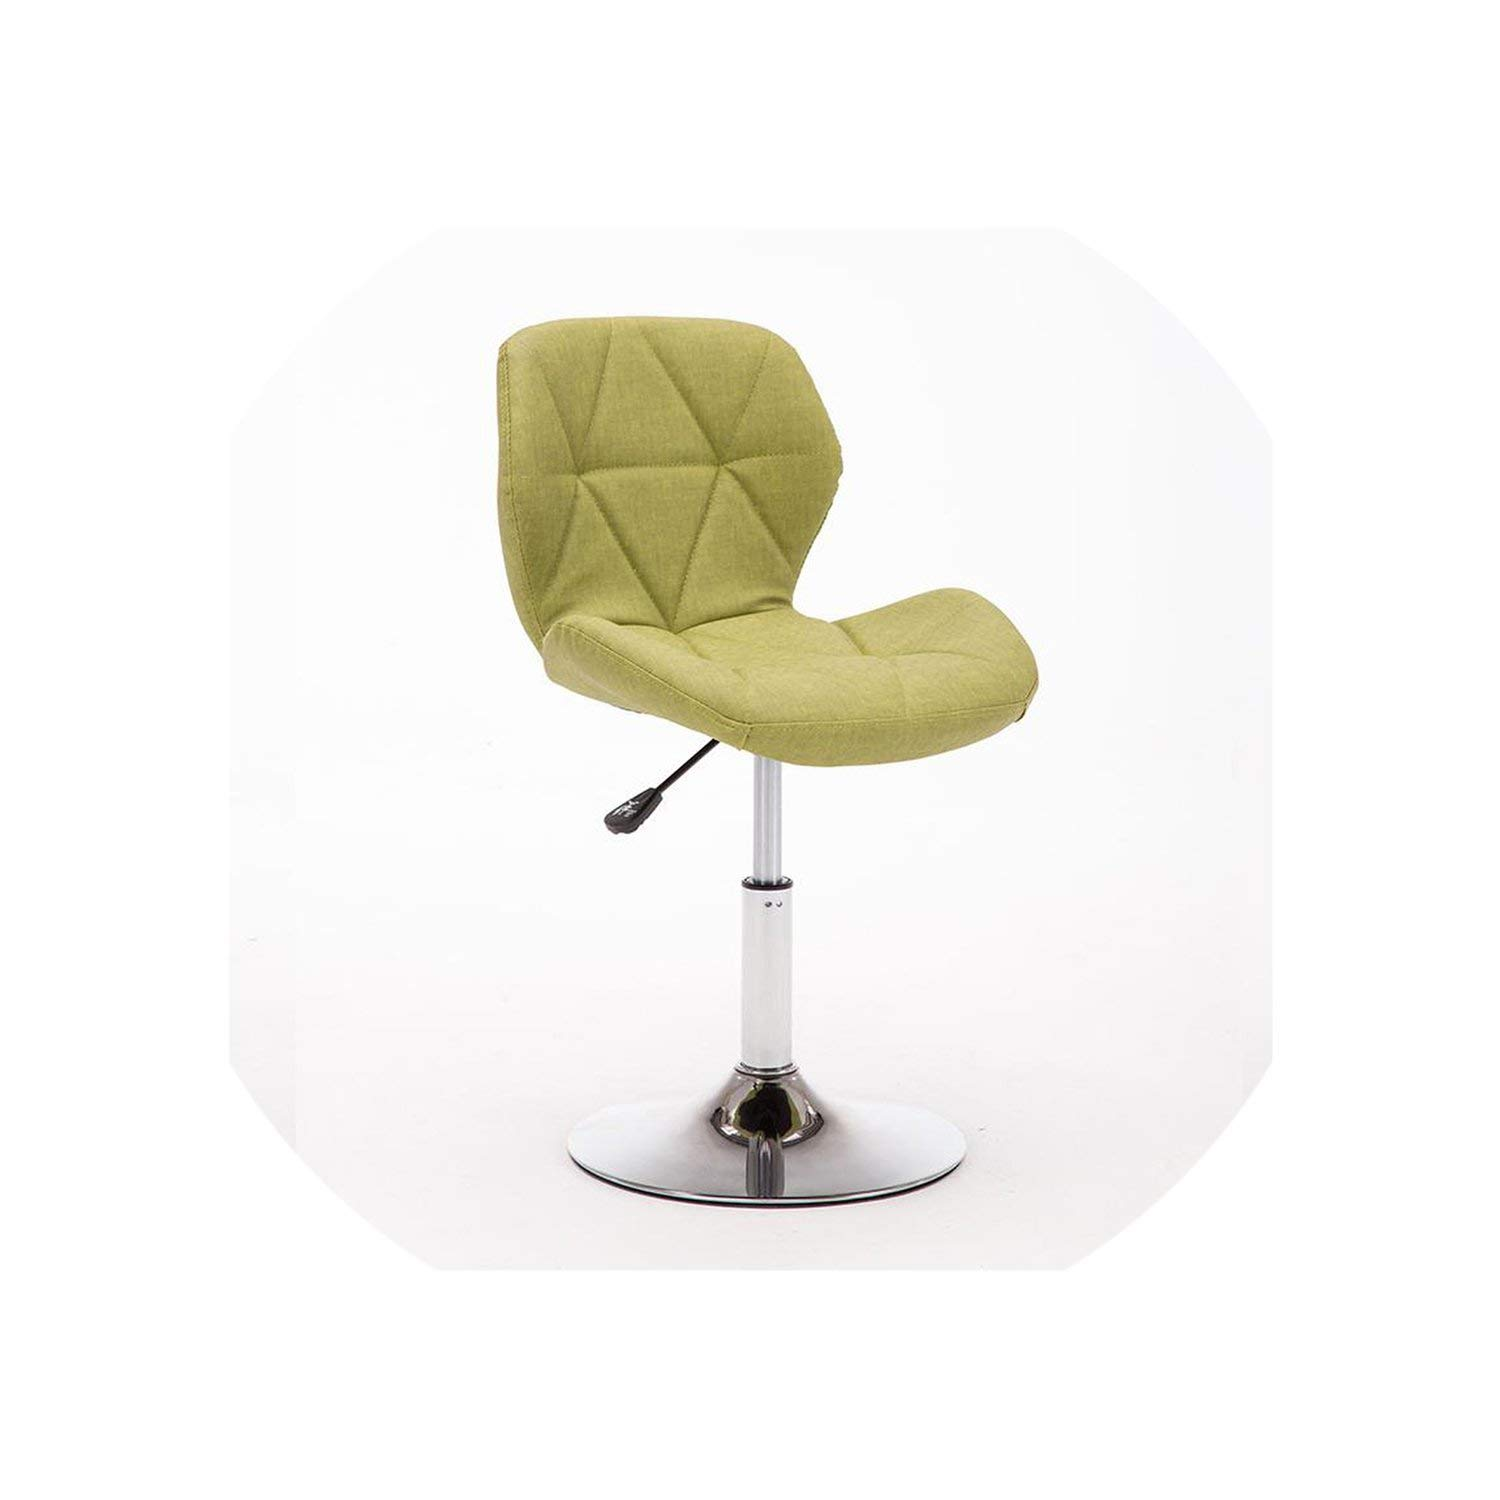 Style 20 tthappy76 New Bar Stools Bar Chair redating Lift Chair High Stools Home Fashion Creative Beauty Stool Swivel Chair,Style 9